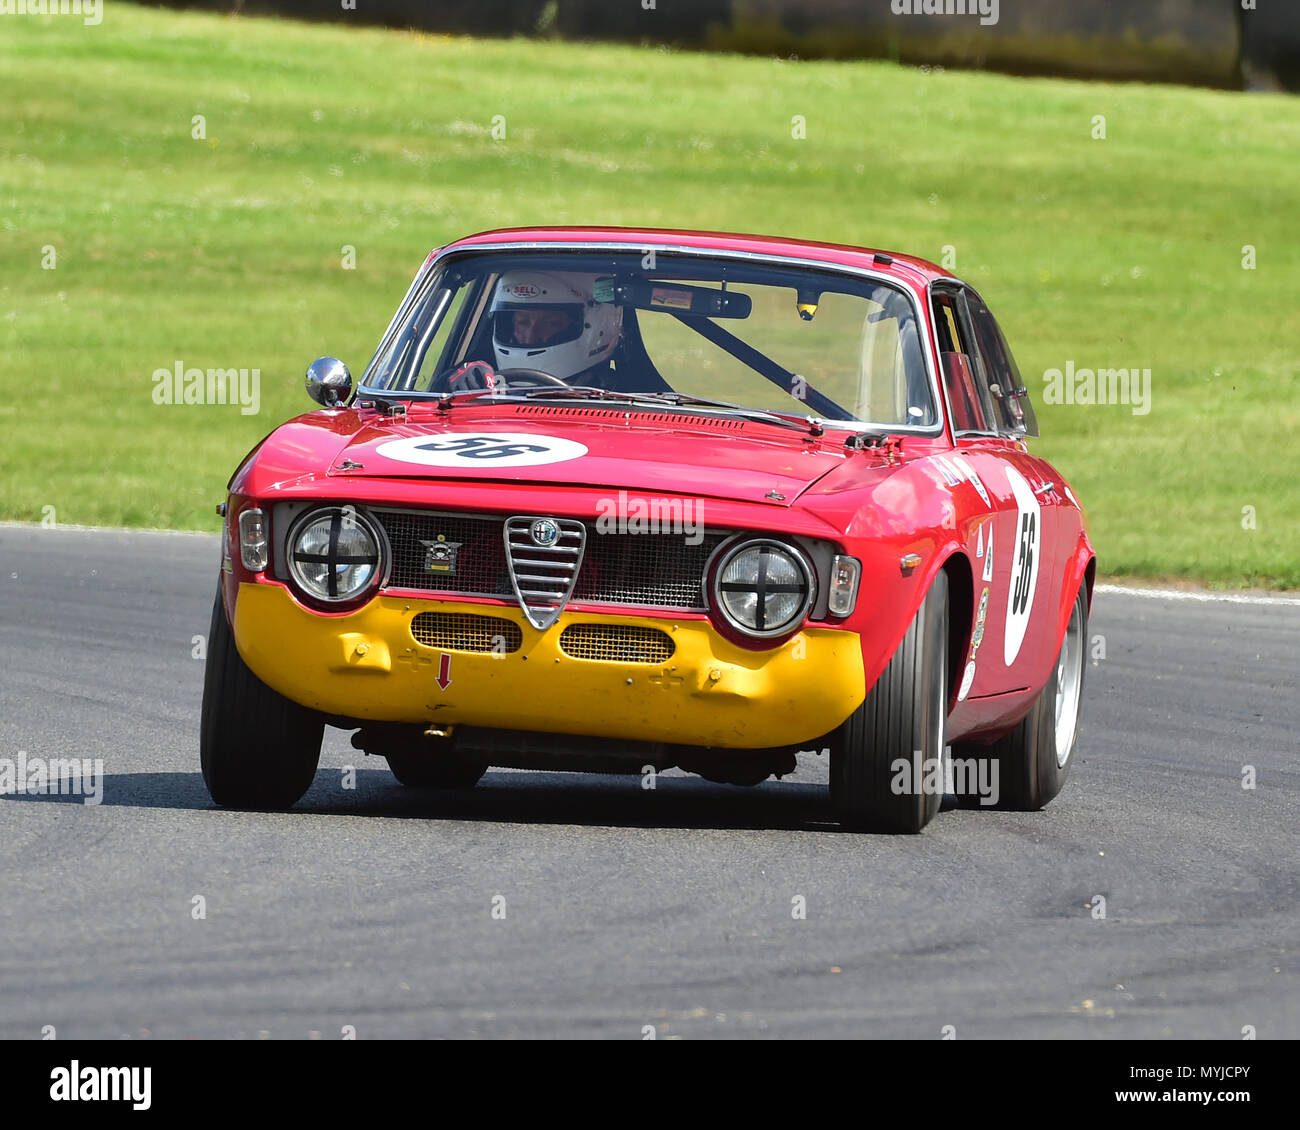 Alfa Romeo Sprint Gt Stock Photos & Alfa Romeo Sprint Gt